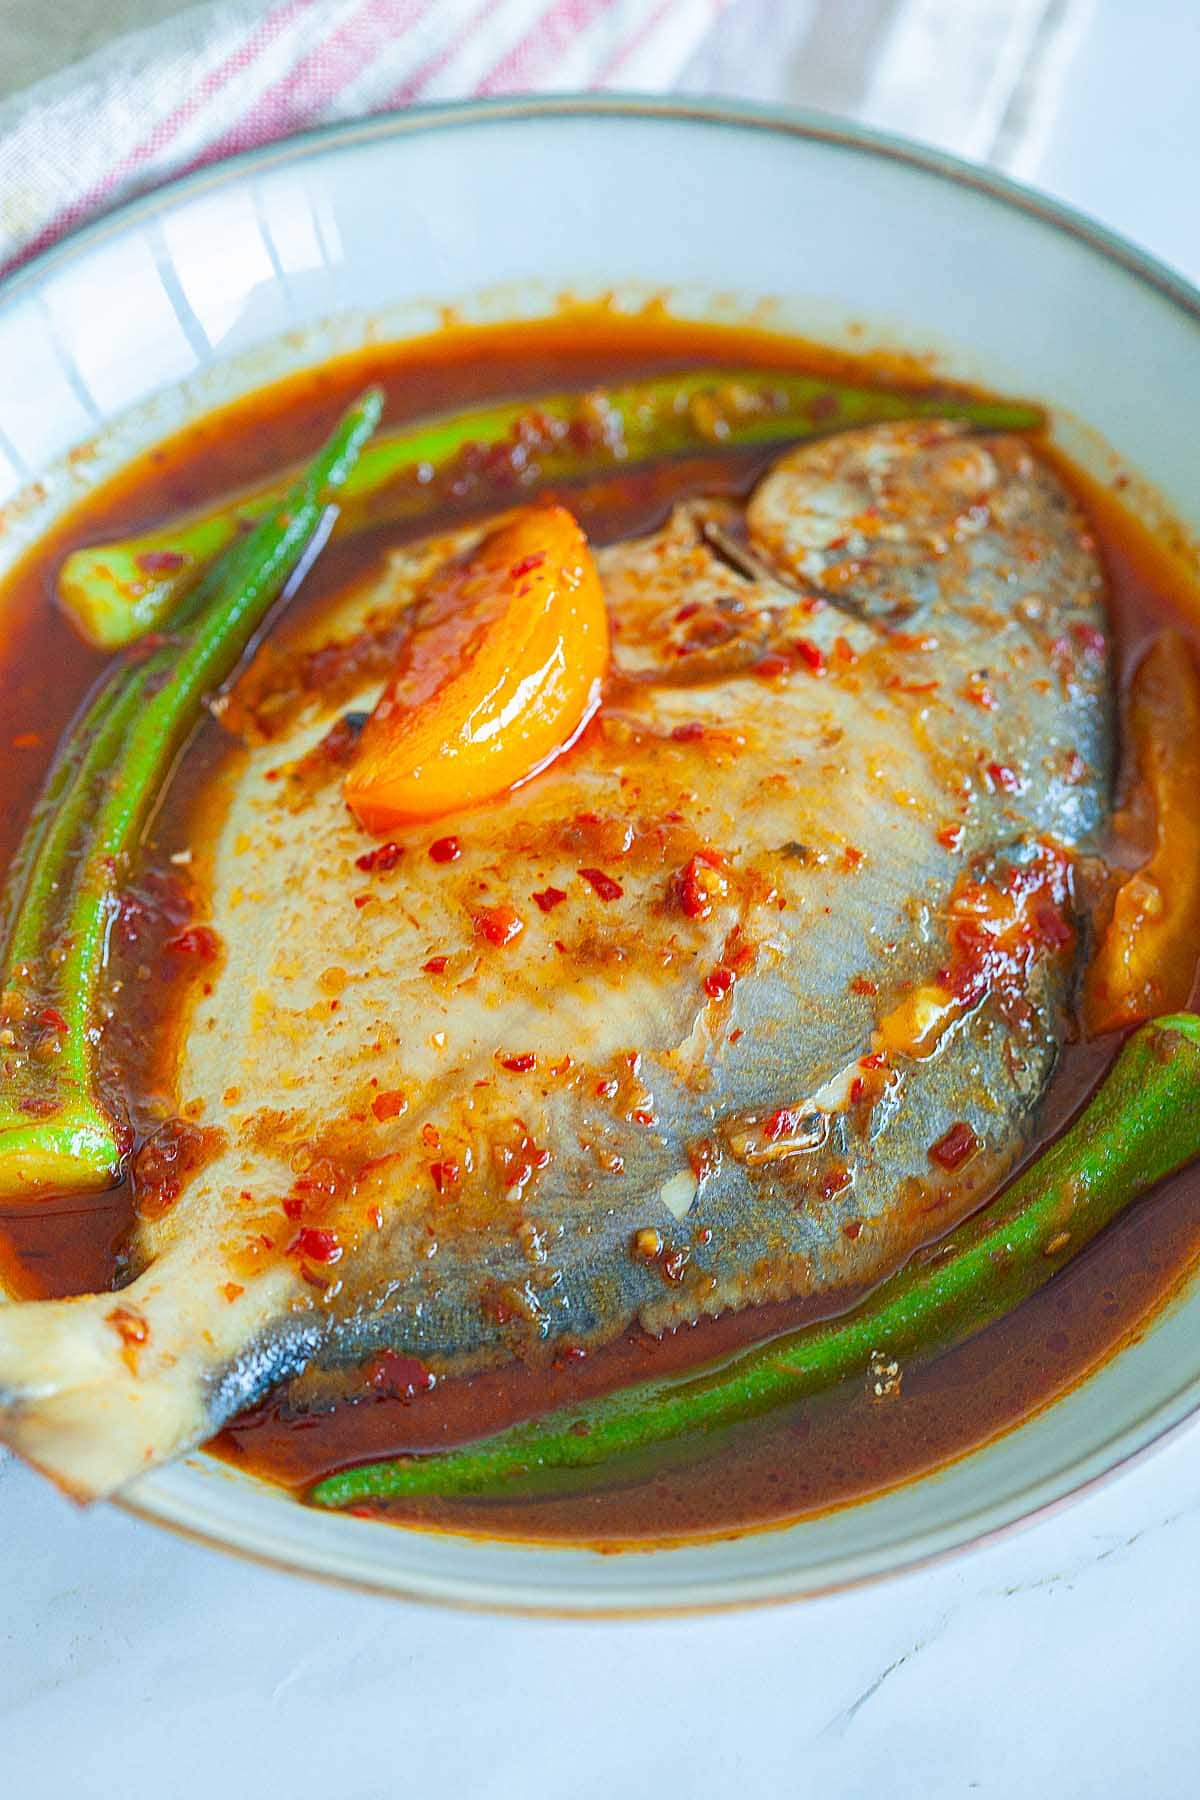 Fish with asam pedas.